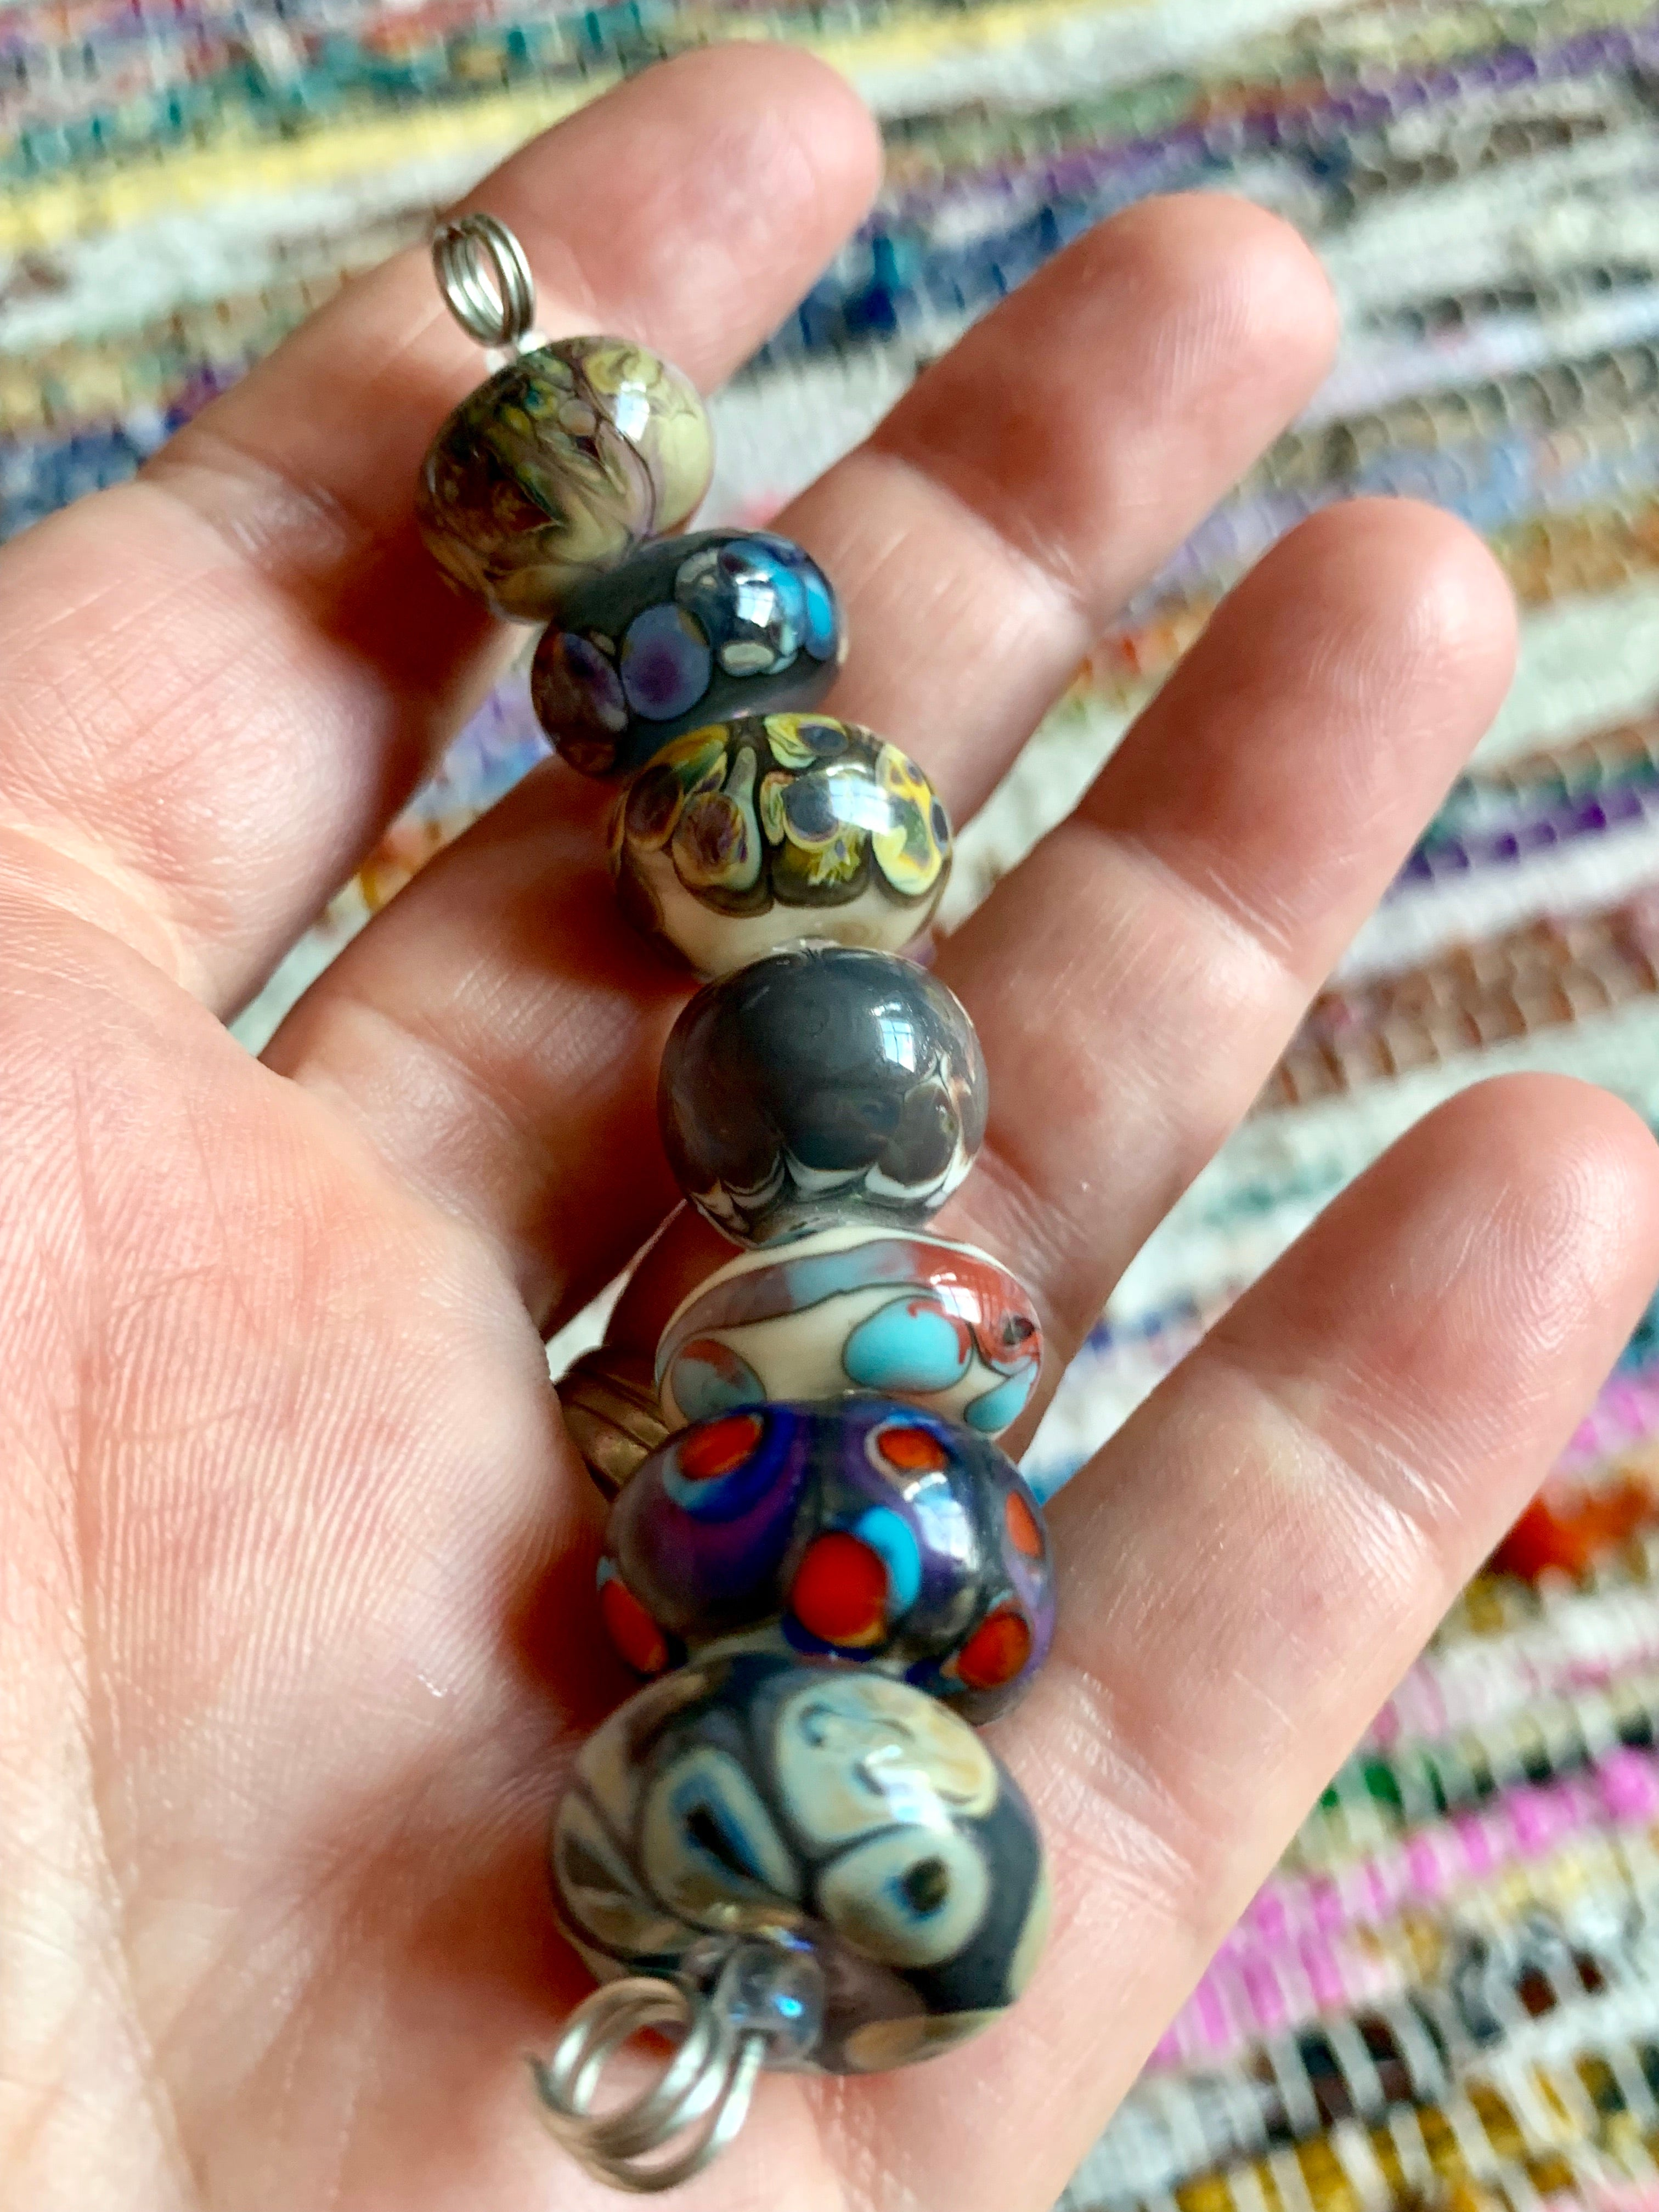 Set of 7 mixed rondelle lampwork beads in various neutral tones